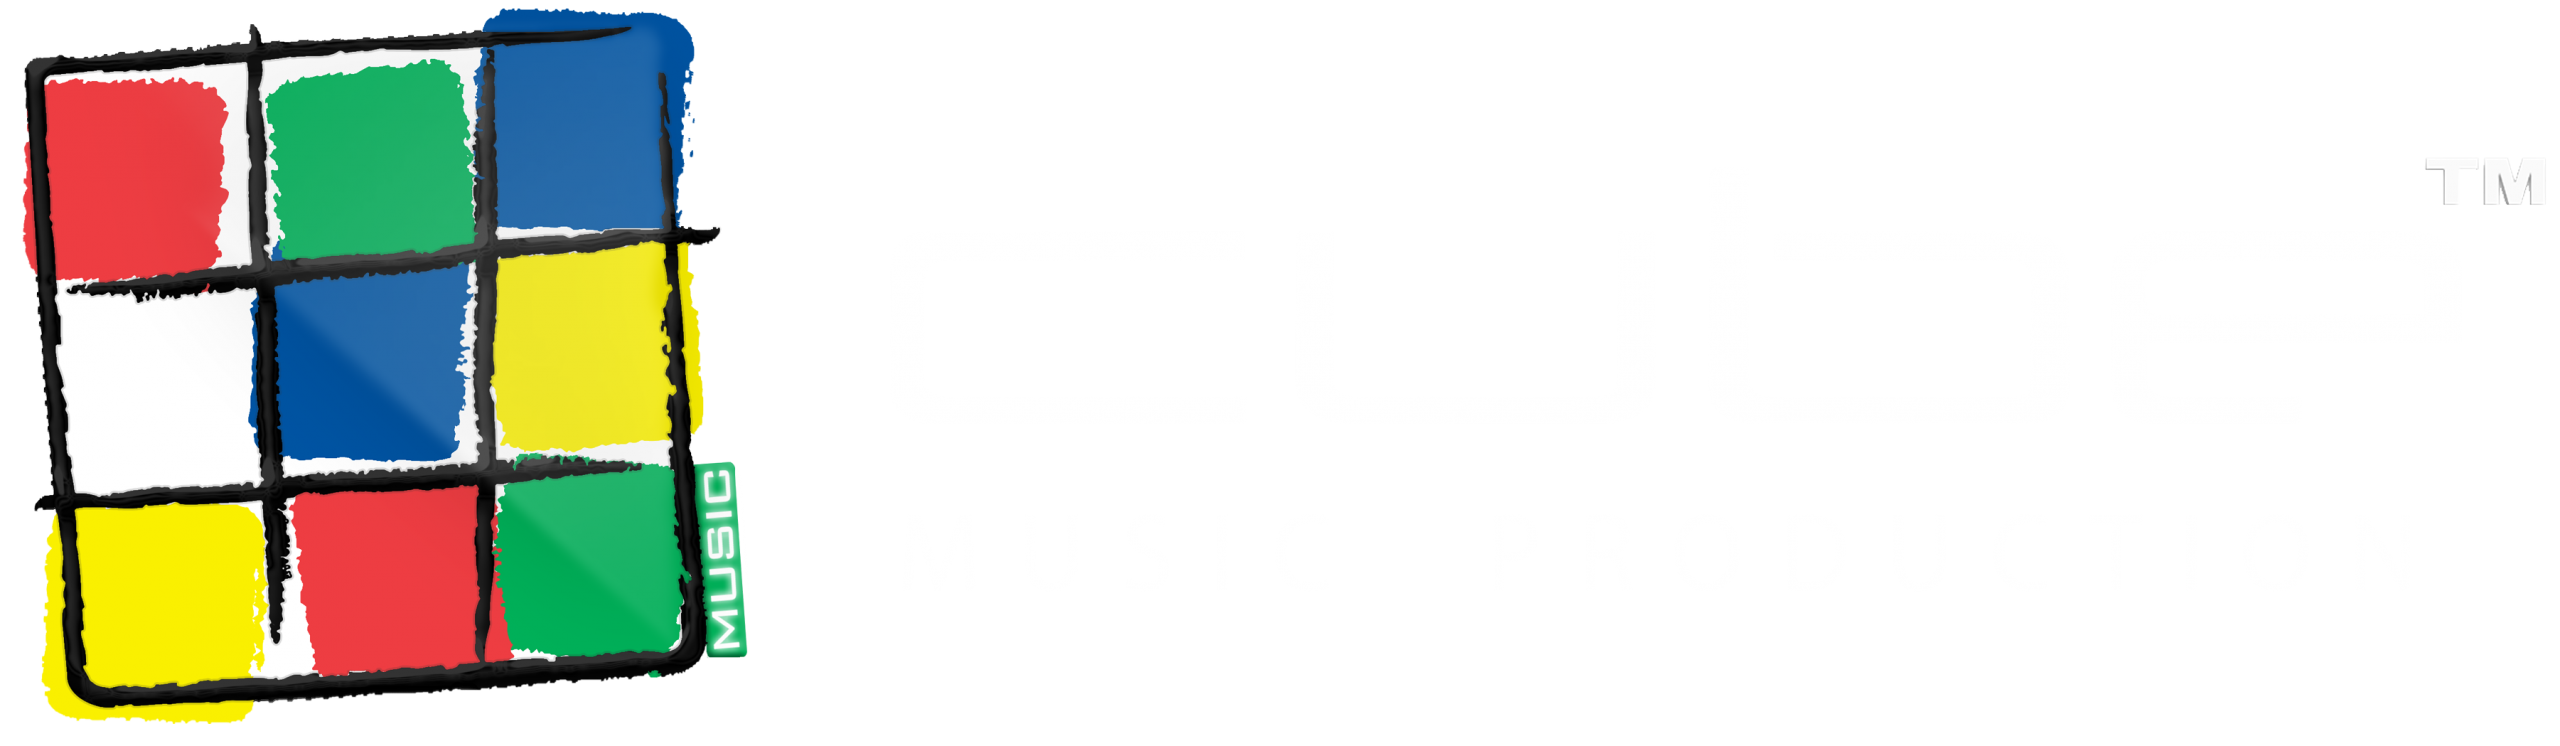 Cube Music Production